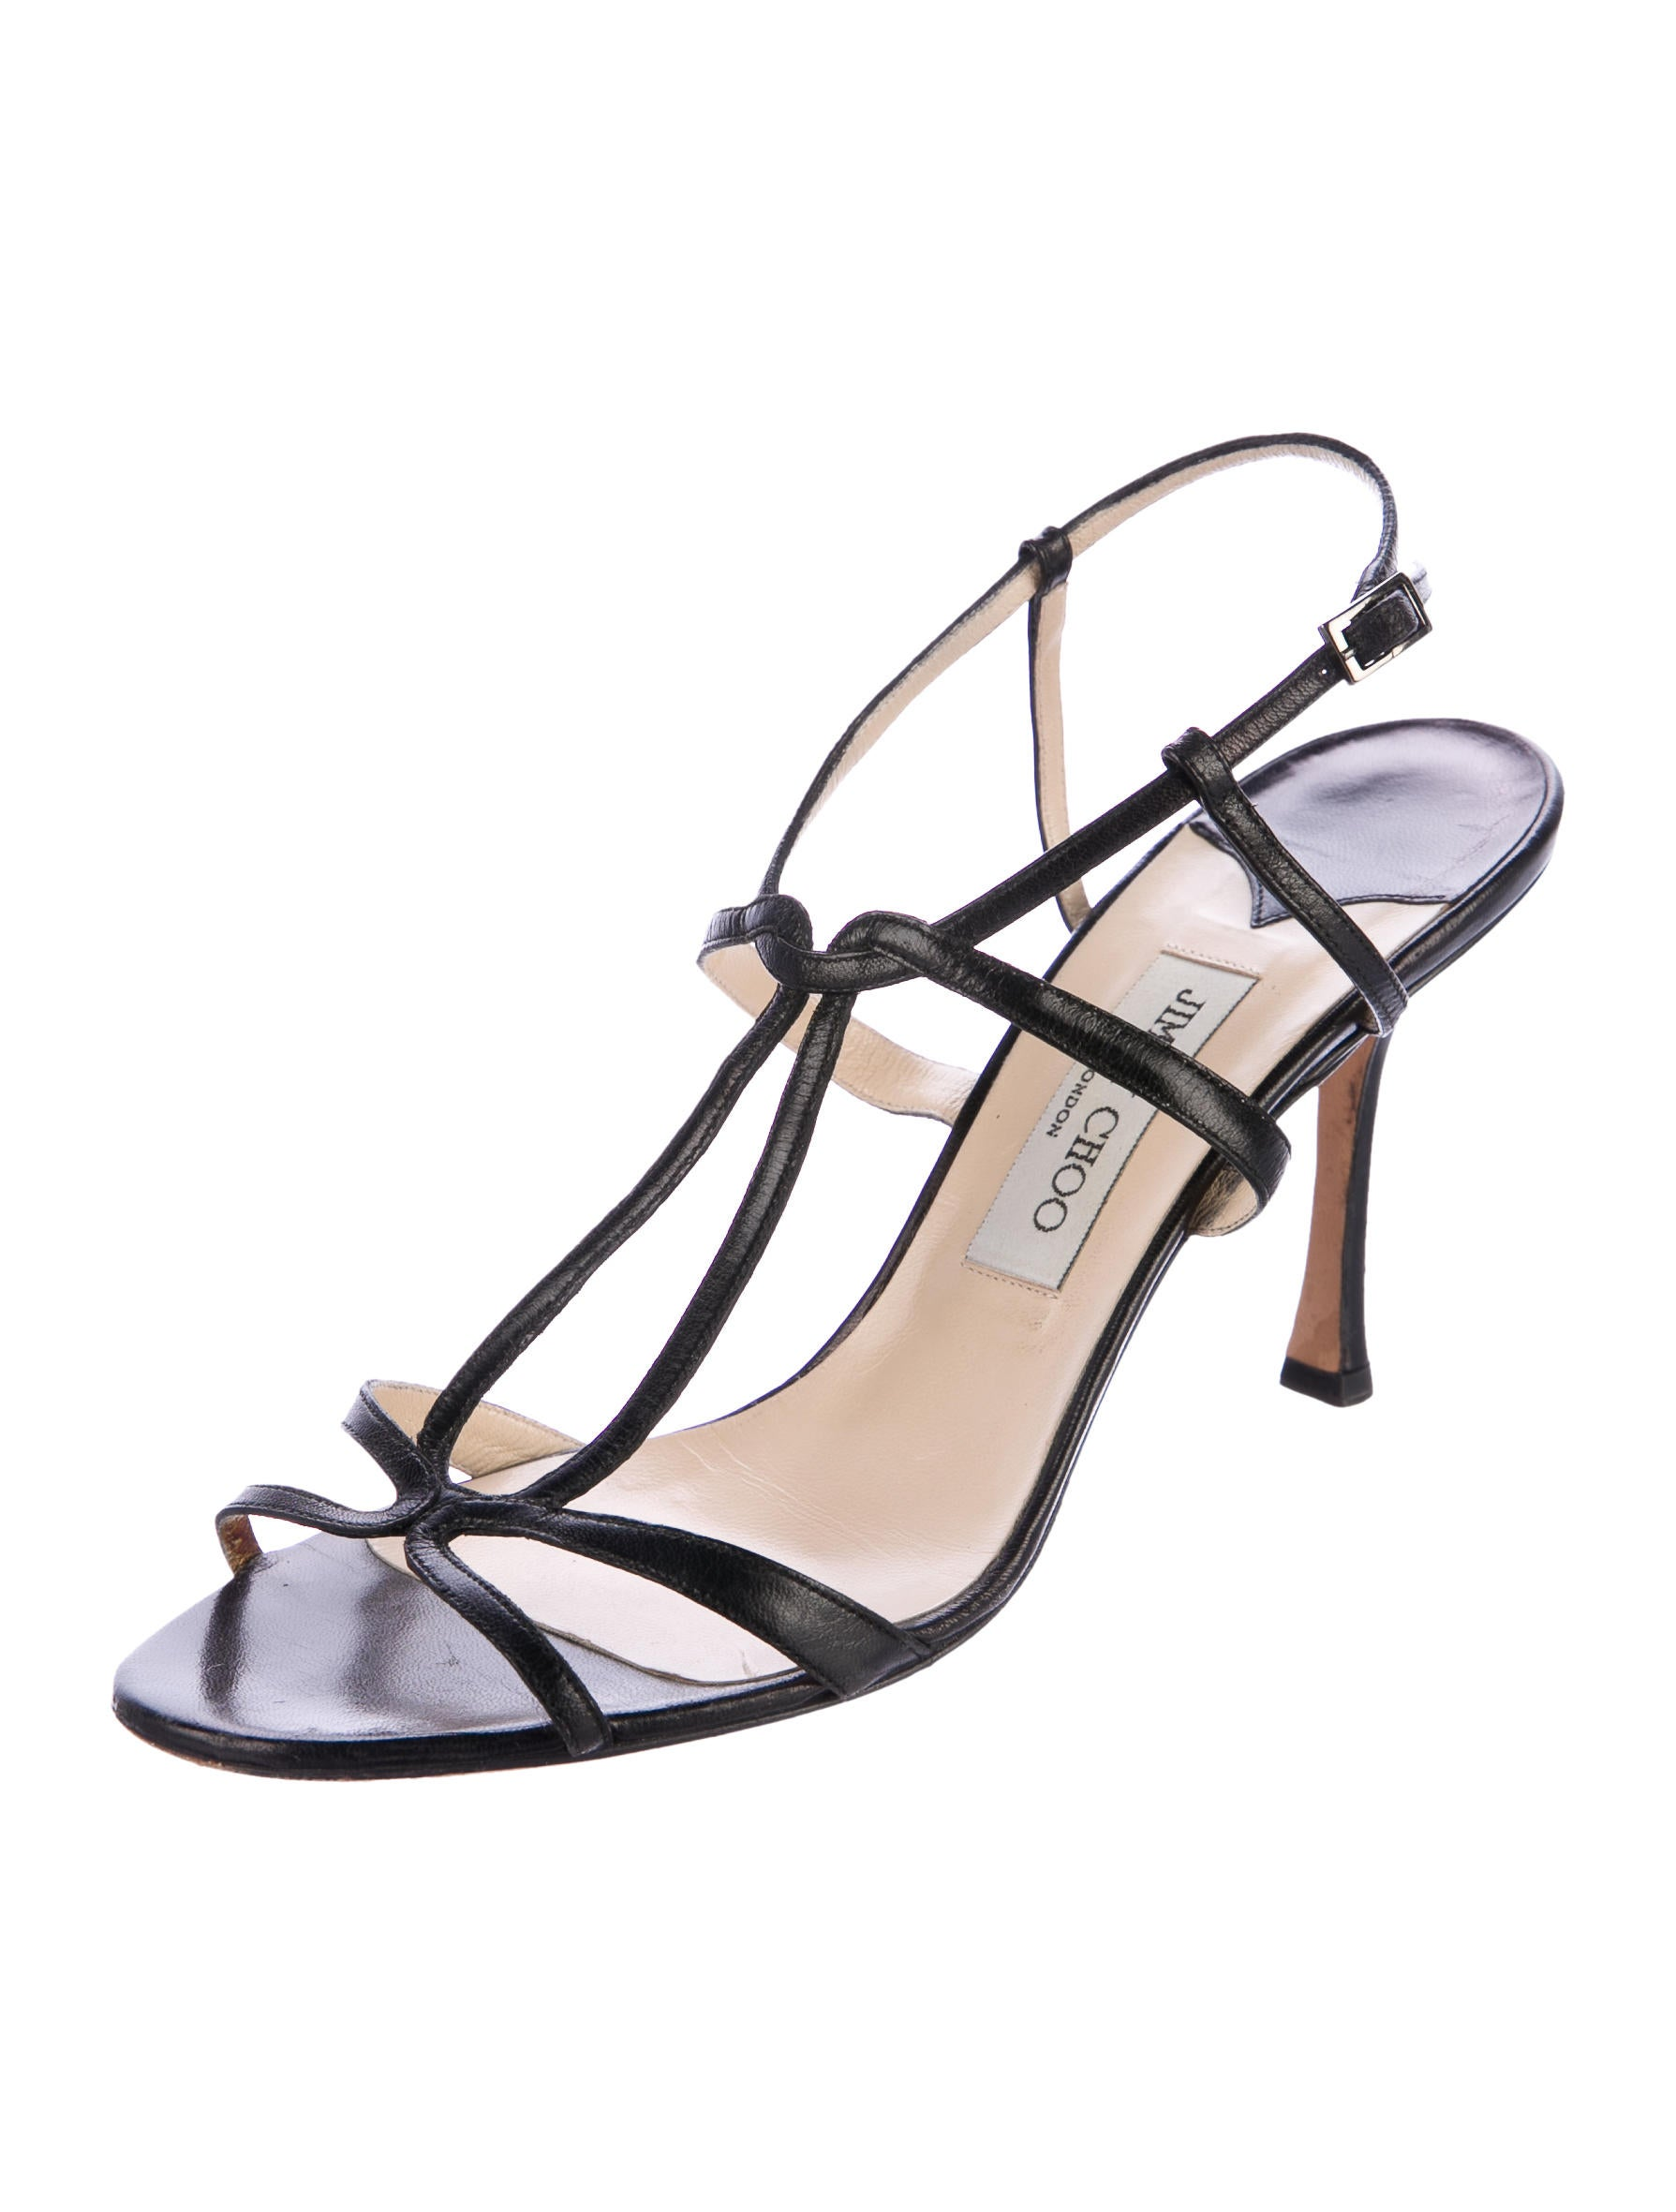 low shipping sale online Jimmy Choo Multistrap Wrap-Around Sandals clearance cheapest price clearance official buy cheap cheap amazing price for sale WpIXRCLL